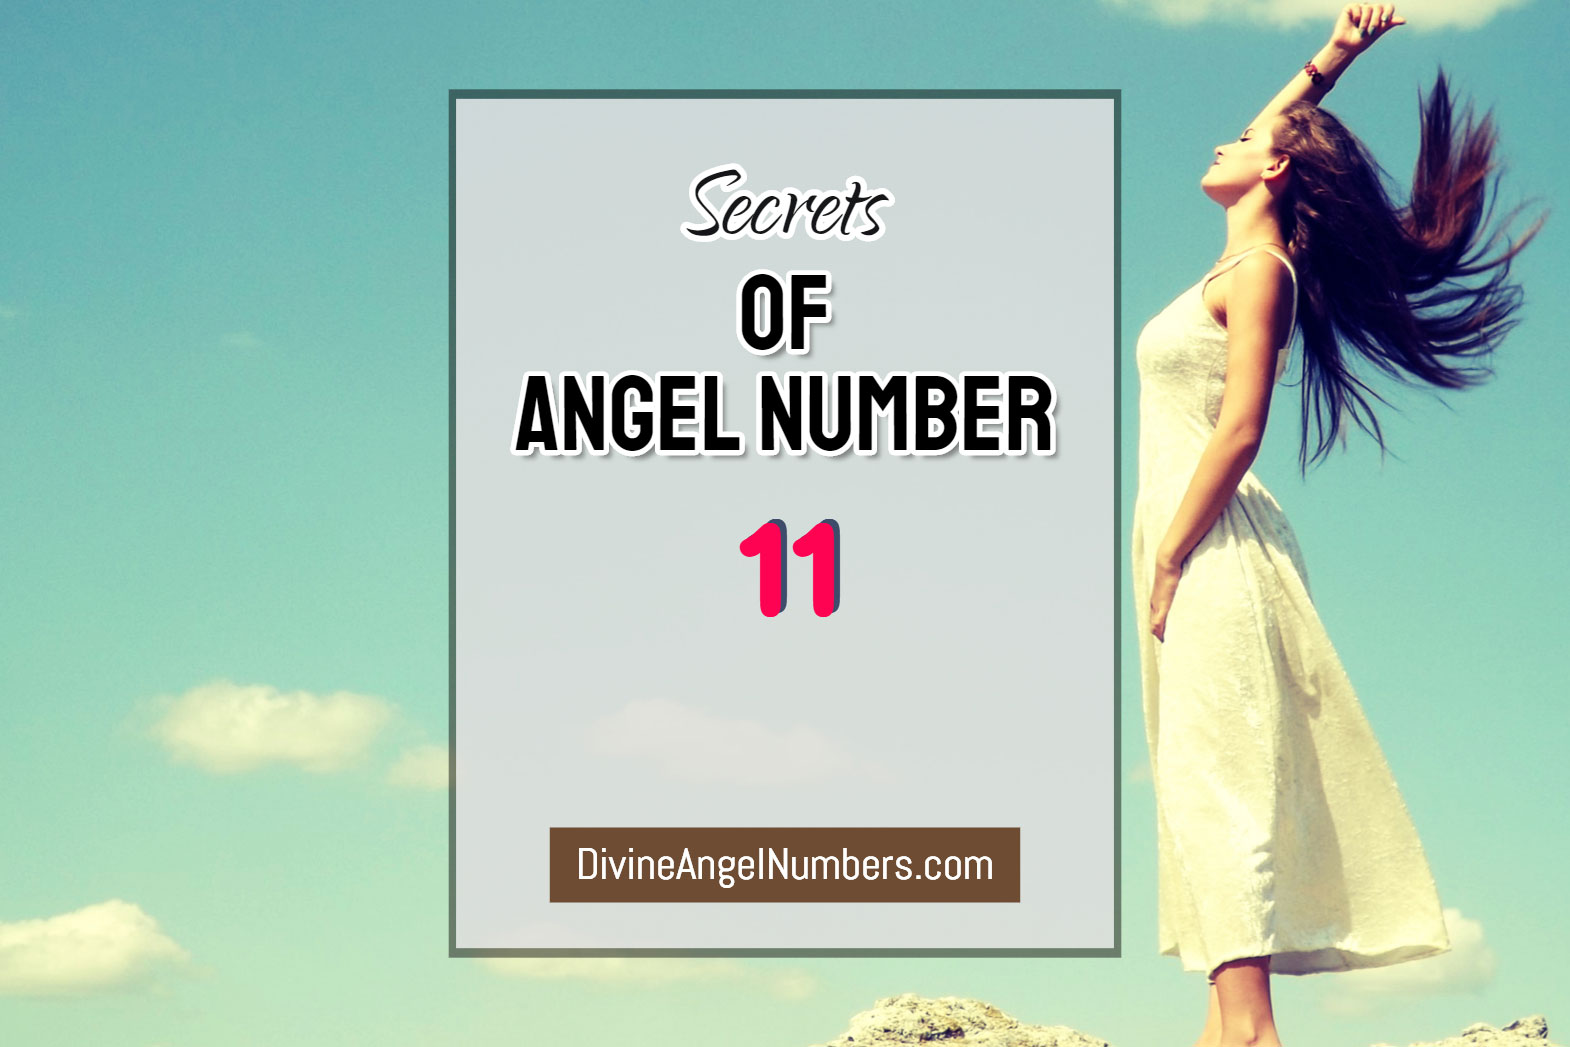 6 Reasons Why You Are Seeing Angel Number 11 - Meaning Of 11